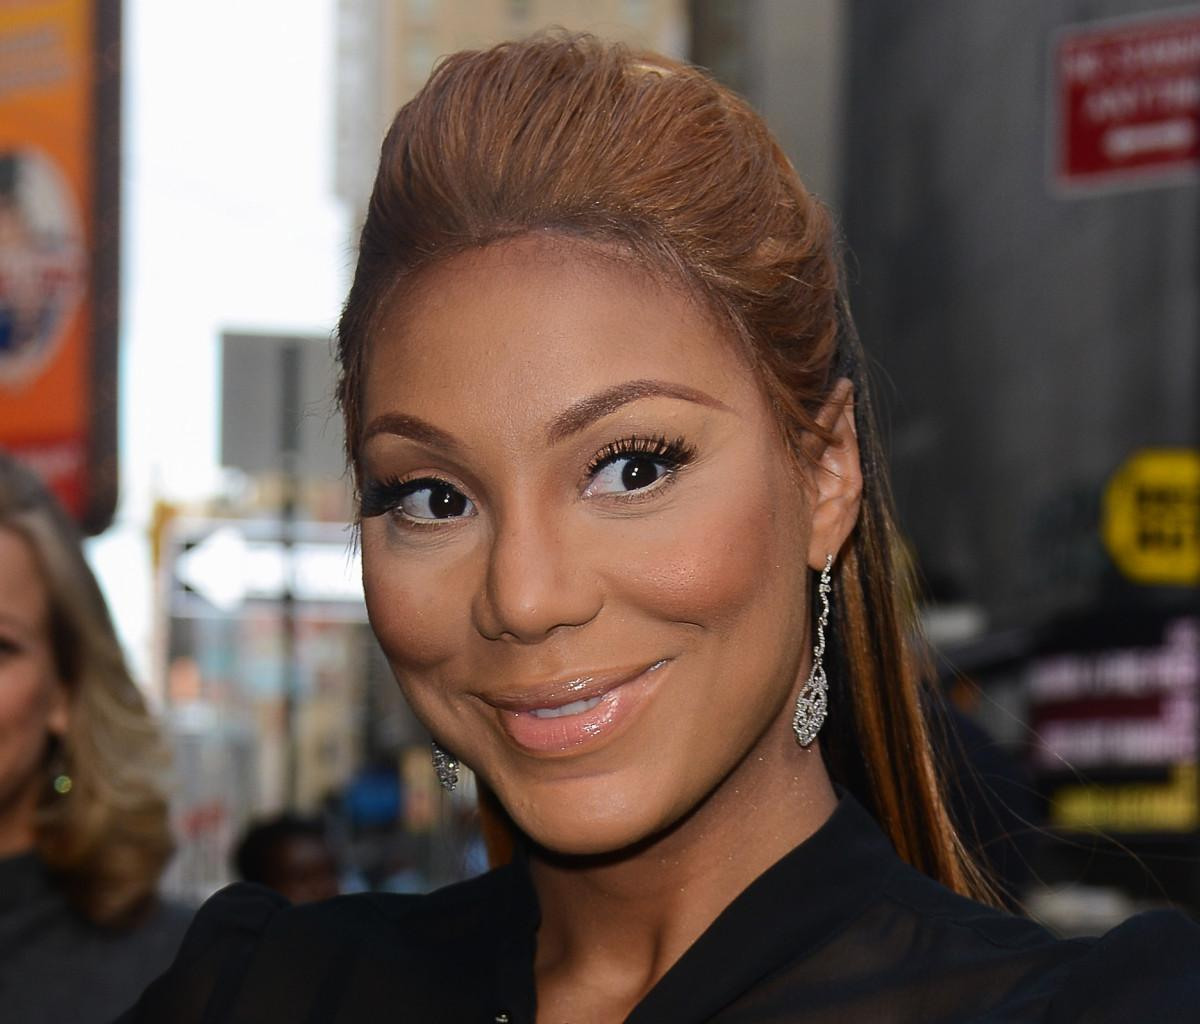 Tamar Braxton Shares New Photos With Her Nigerian Boyfriend On A Boat And Fans Are Happy For Her: 'Let This Lady Enjoy Her King In Peace'